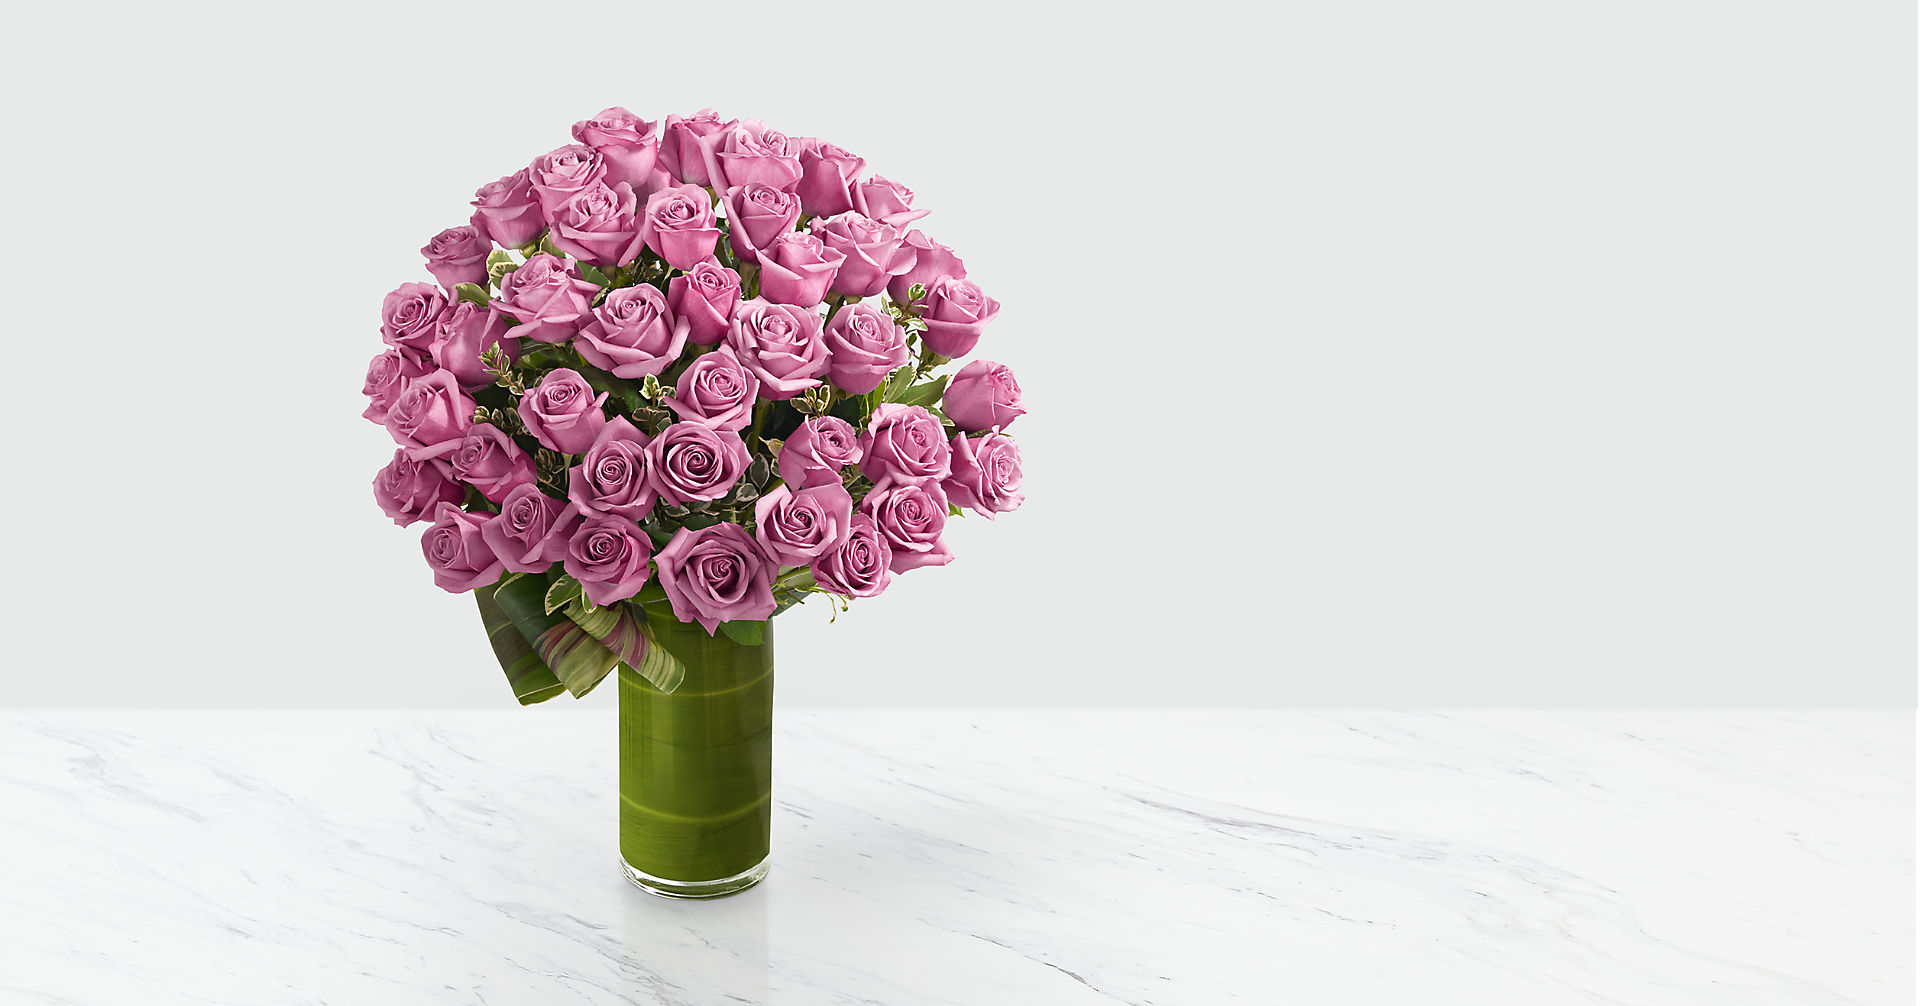 Sensational Luxury Rose Bouquet - 24-inch Premium Long-Stemmed Roses - Image 1 Of 3